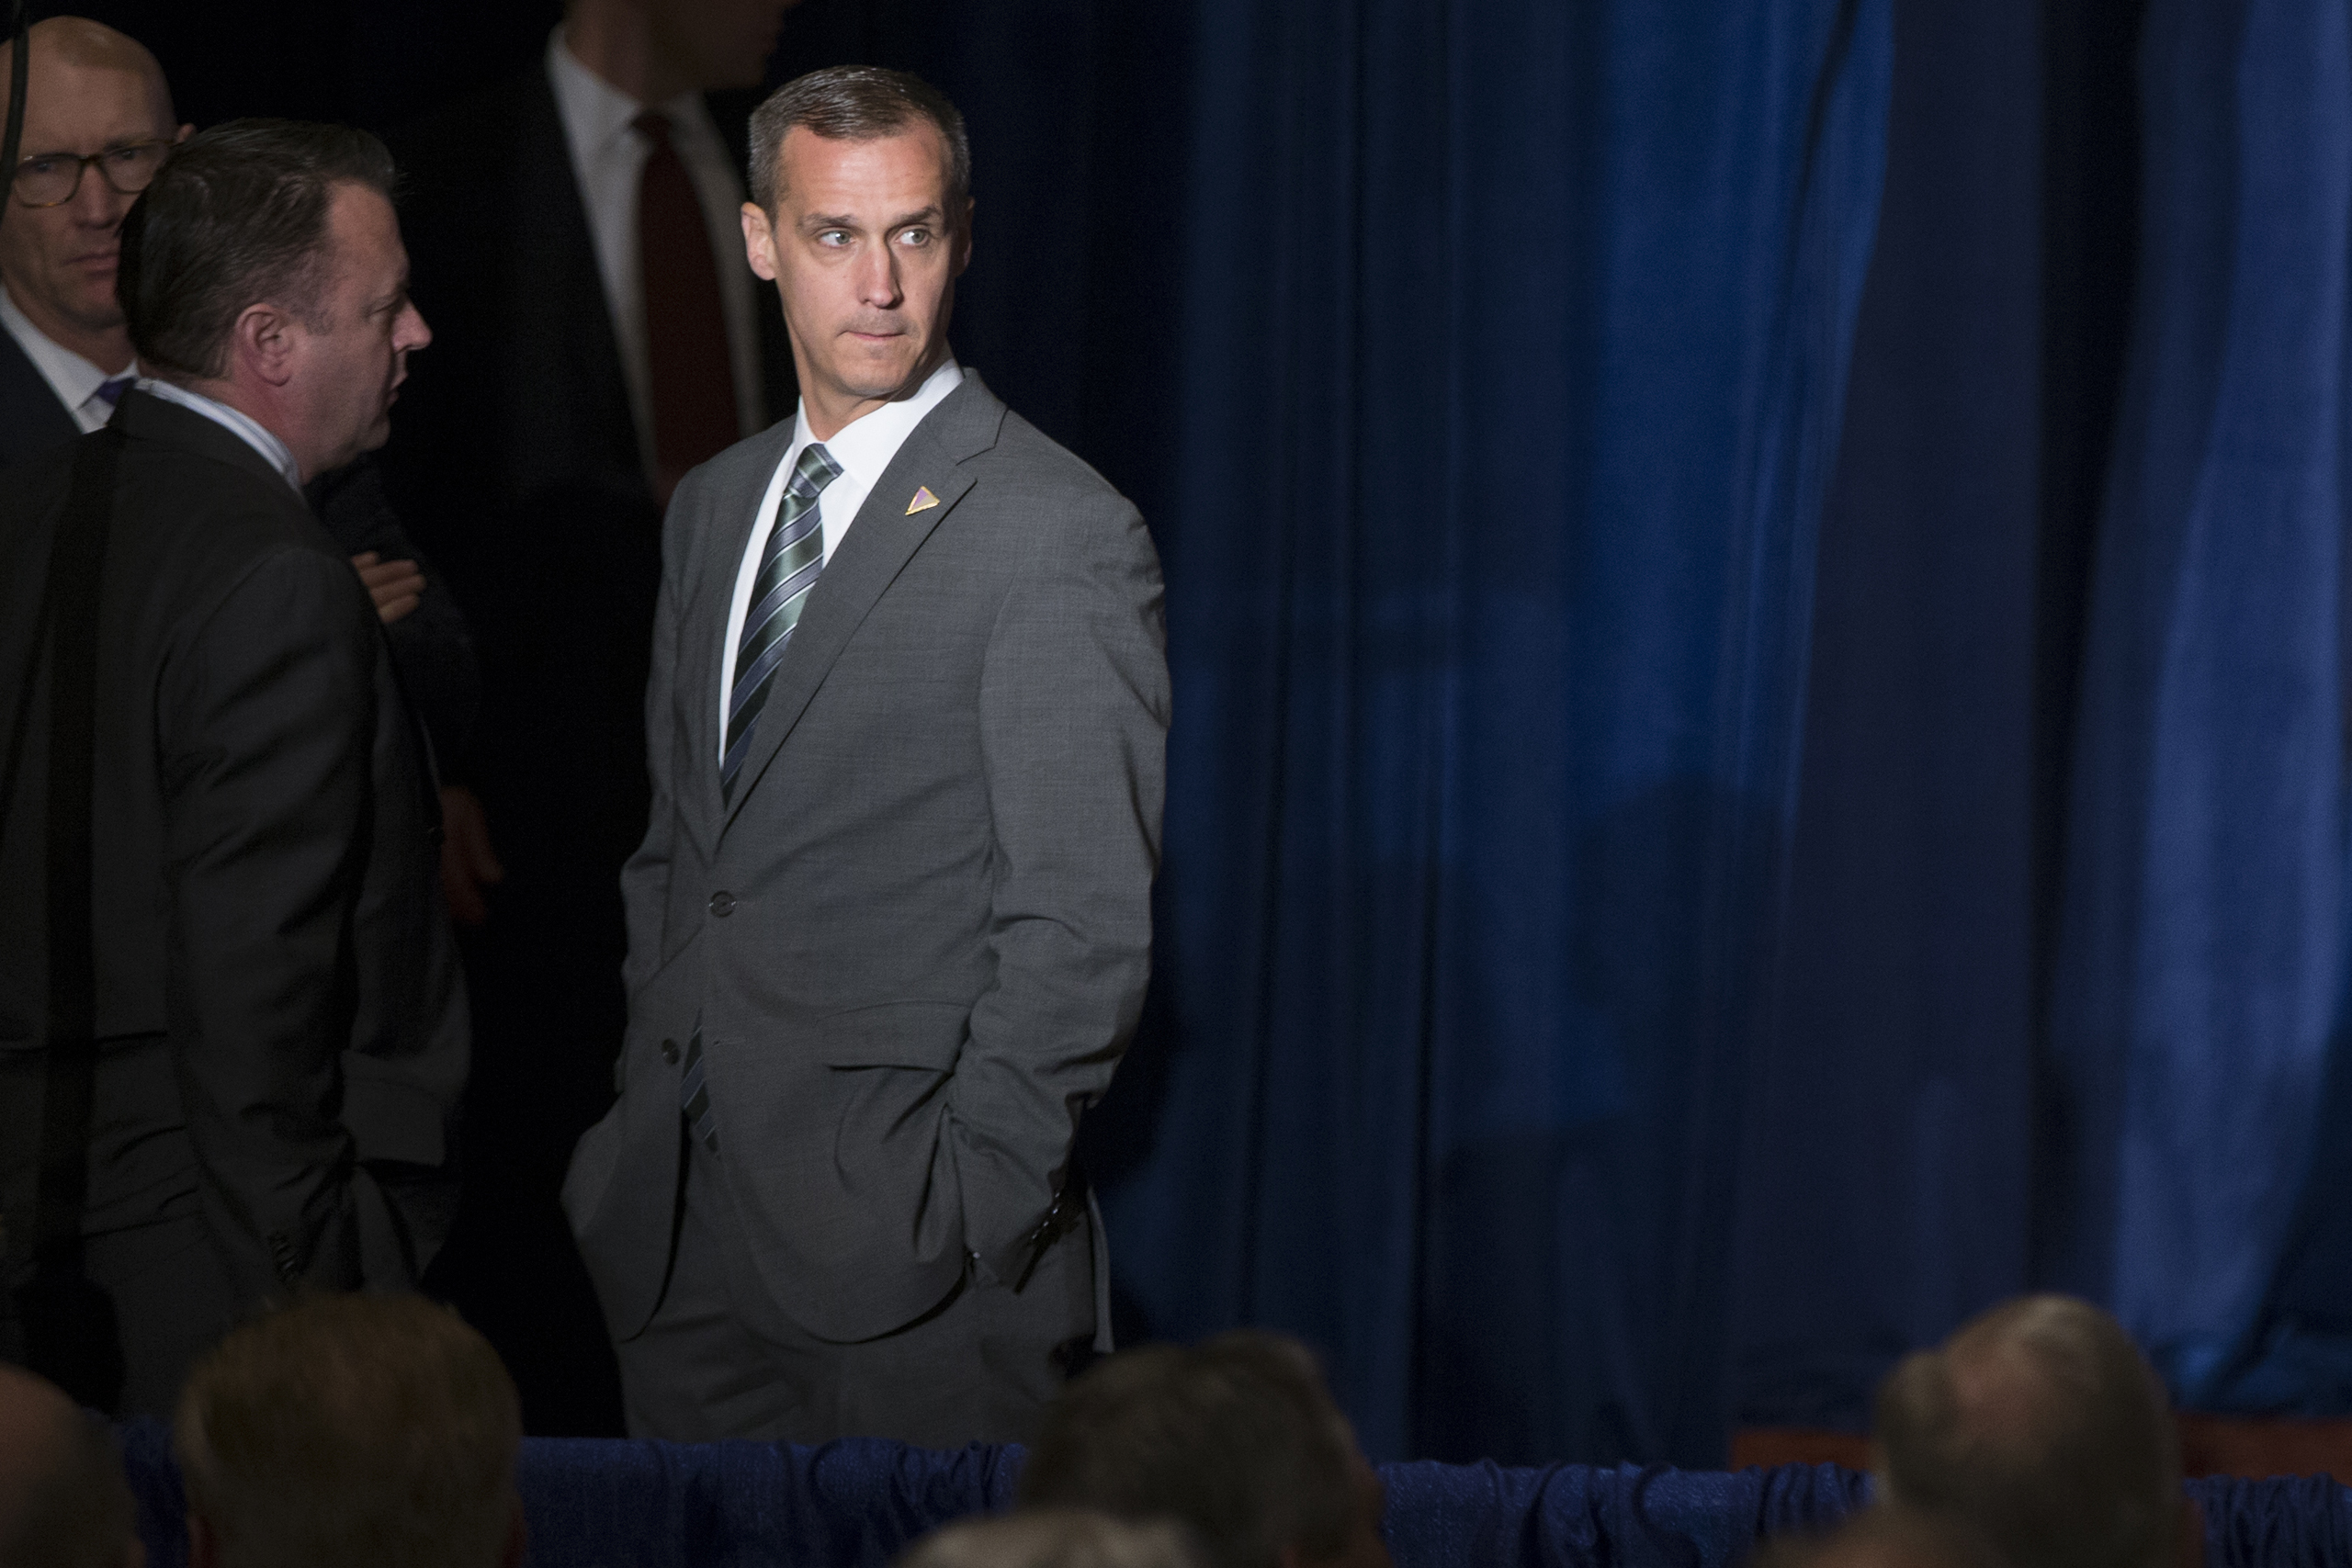 Corey Lewandowski, campaign manager for Republican presidential candidate Donald Trump, waits before the start of a foreign policy speech at the Mayflower Hotel in Washington D.C. on April 27, 2016.